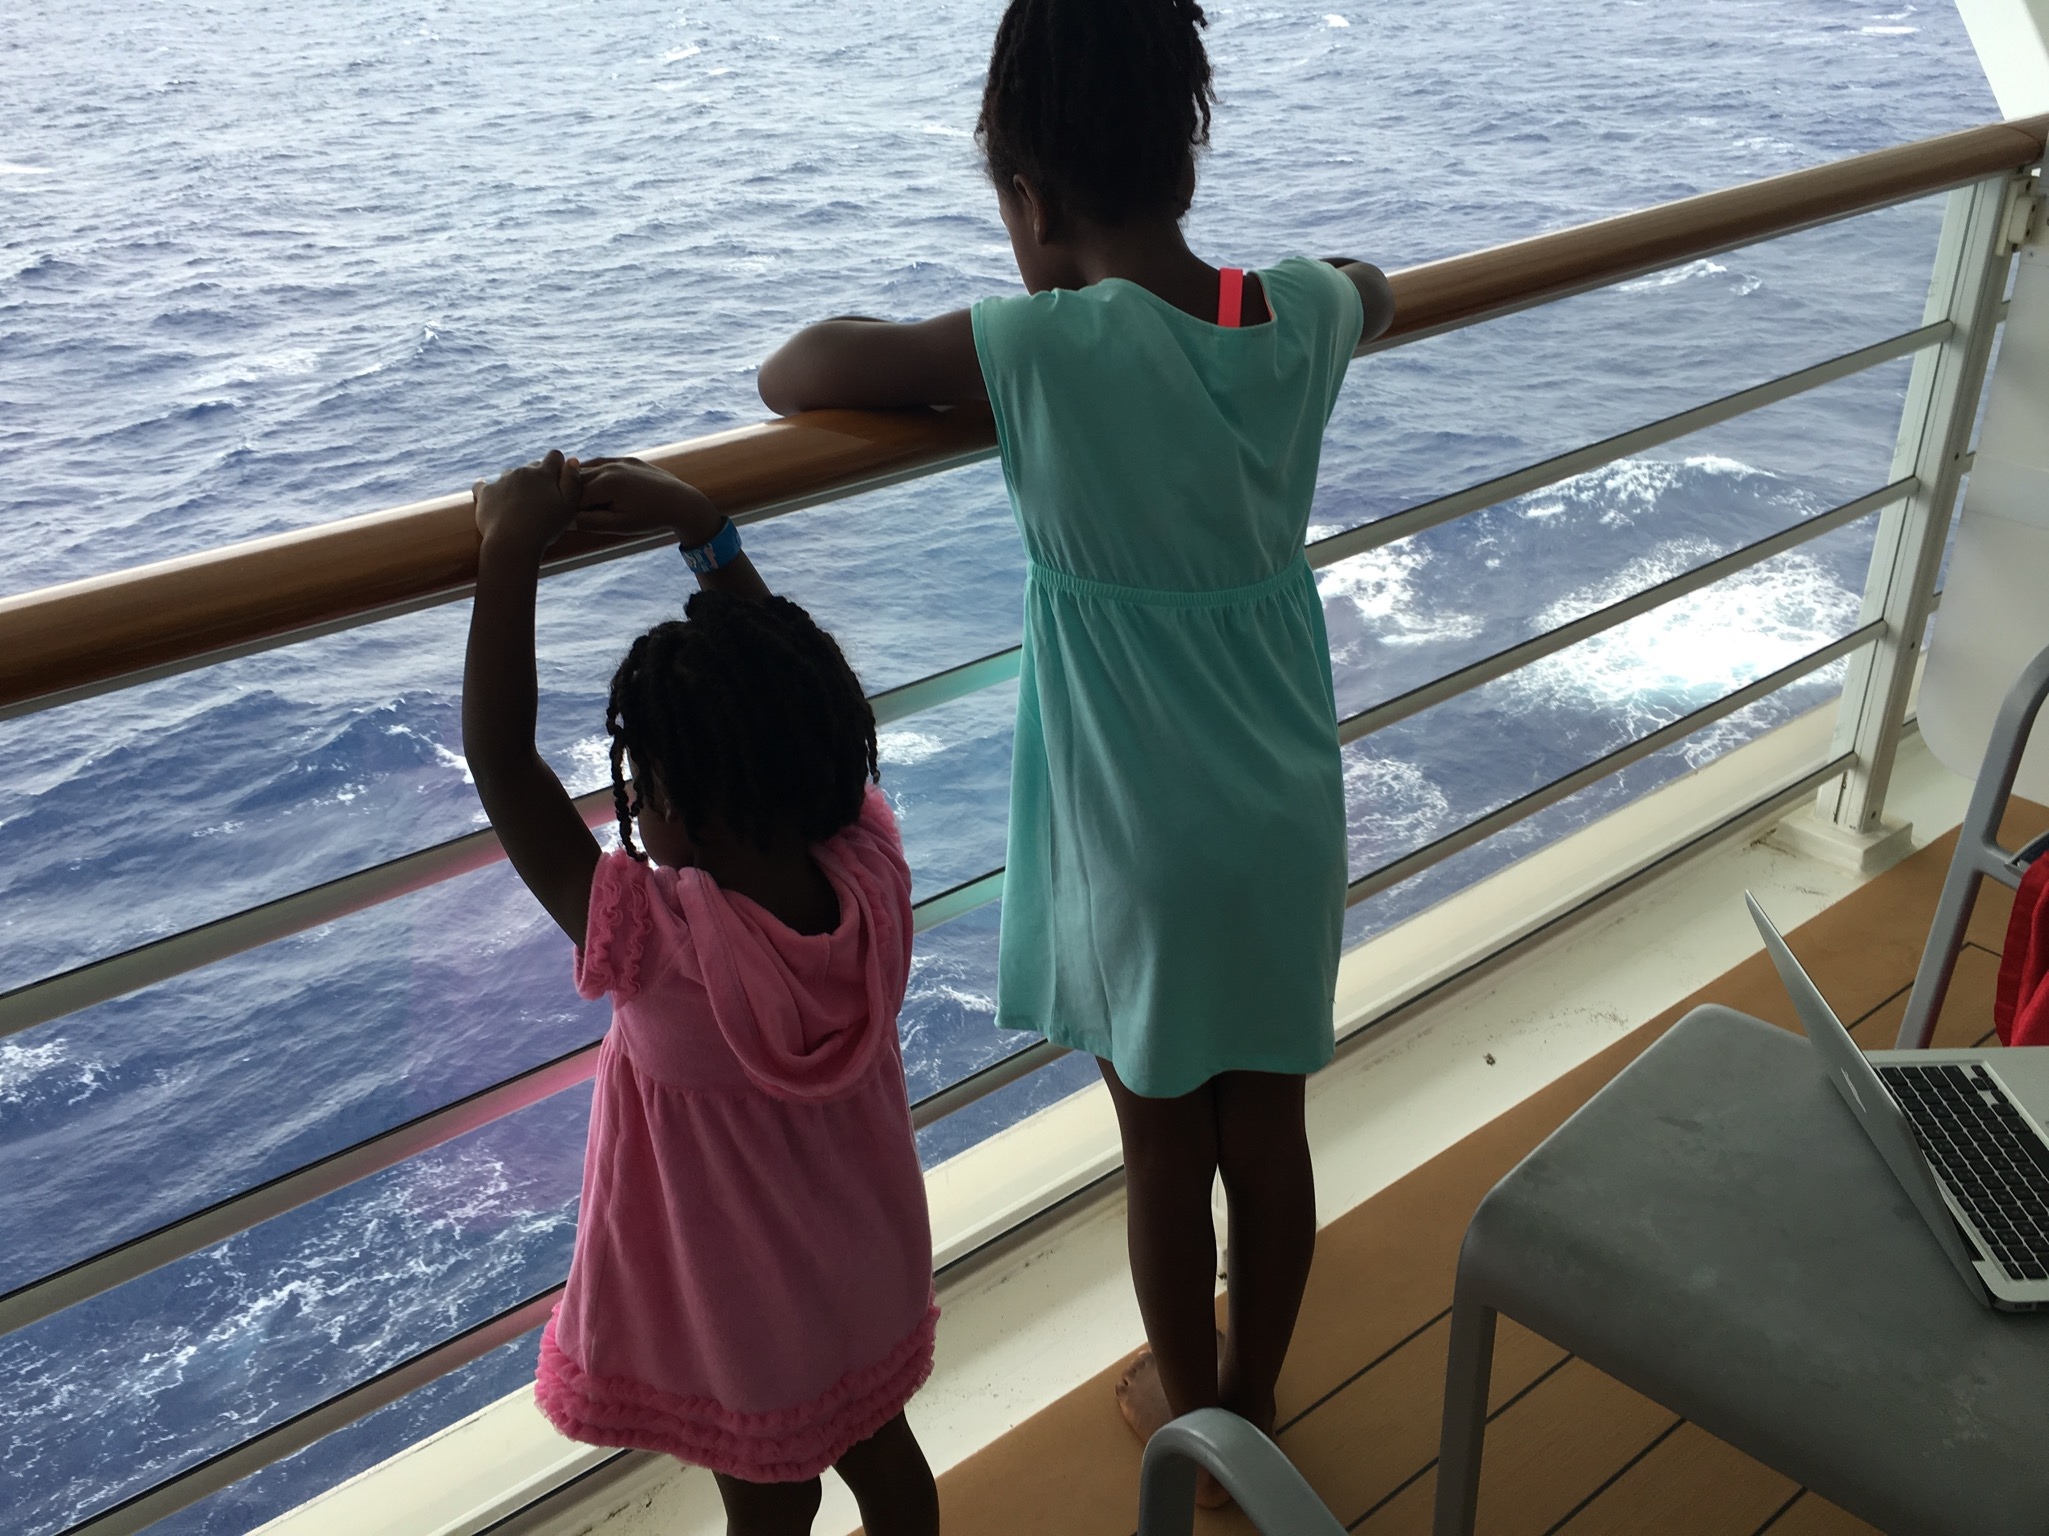 The girls, looking out over our stateroom's balcony at the overcast skies